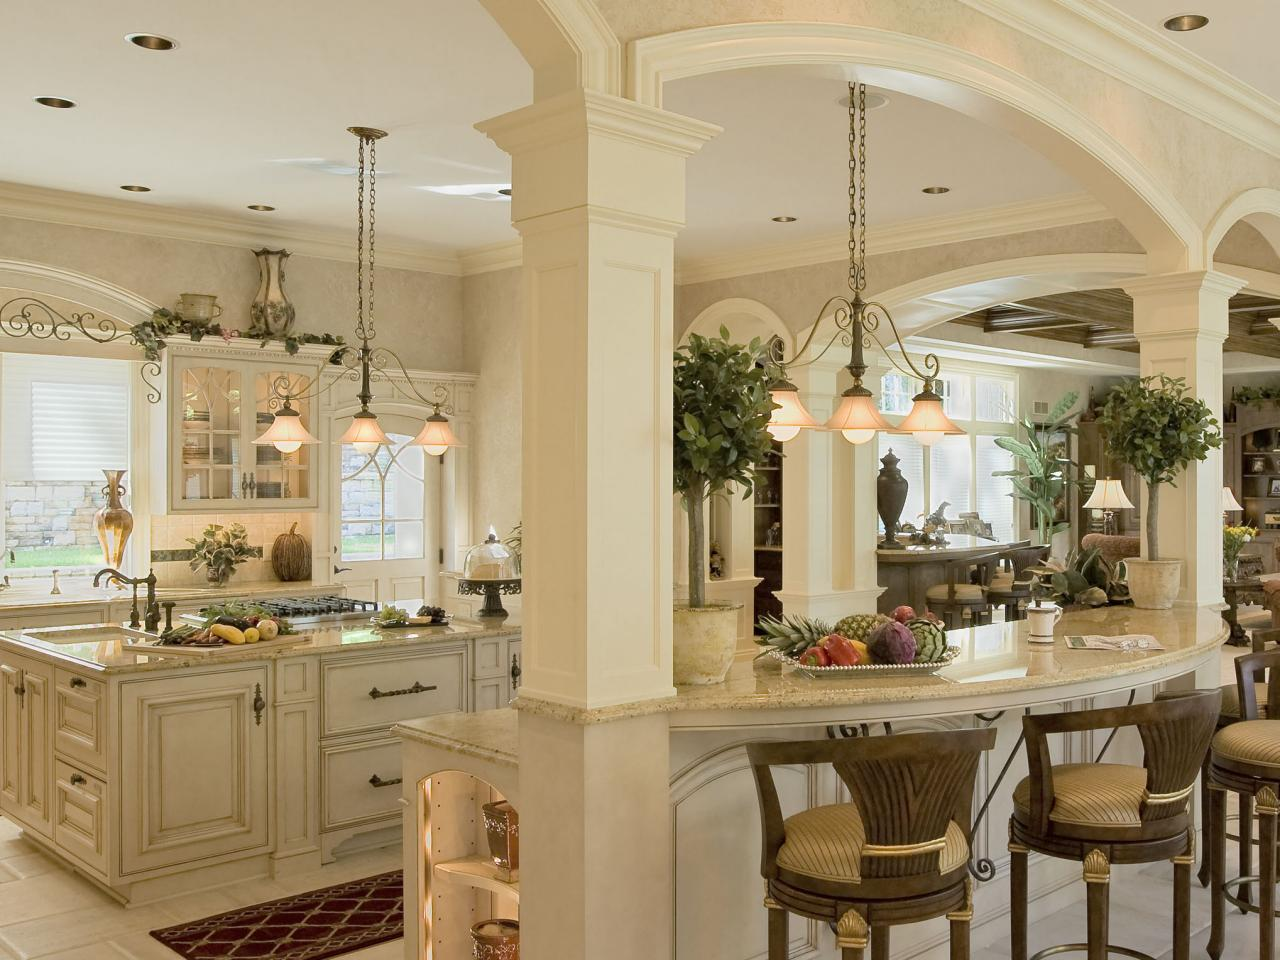 Colonial kitchens hgtv for Kitchen renovation ideas photos